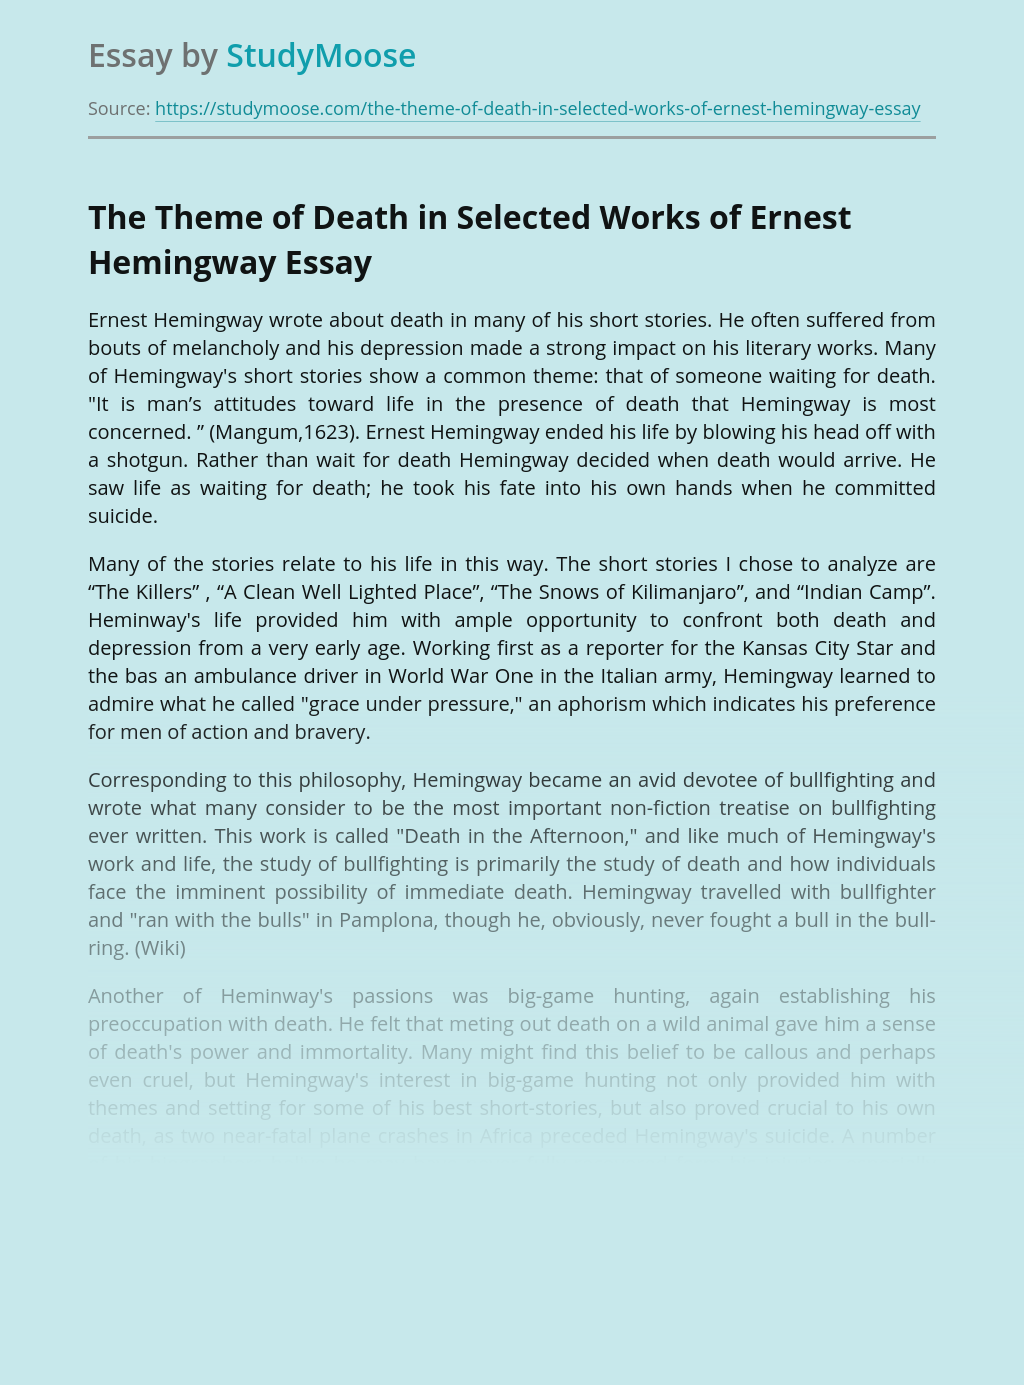 The Theme of Death in Selected Works of Ernest Hemingway